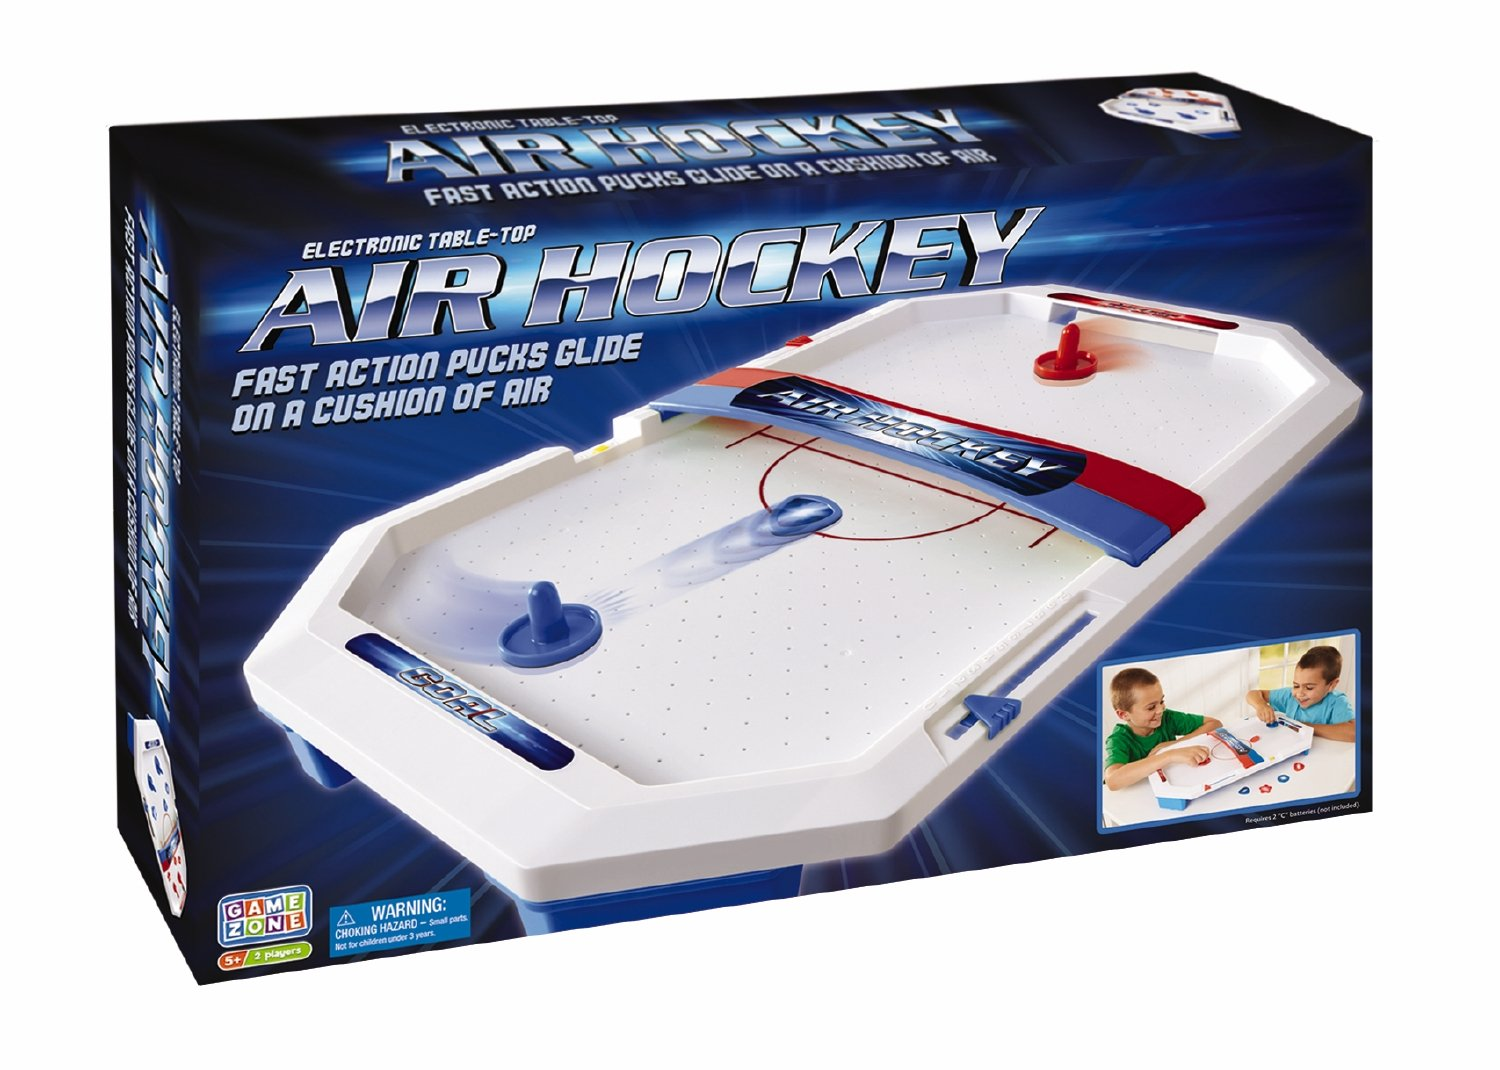 International Playthings Game Zone -  Electronic Table-Top Air Hockey - Fast-Paced Sports Fun in an Easily Portable Battery-Operated Rink for Ages 5 and Up by International Playthings